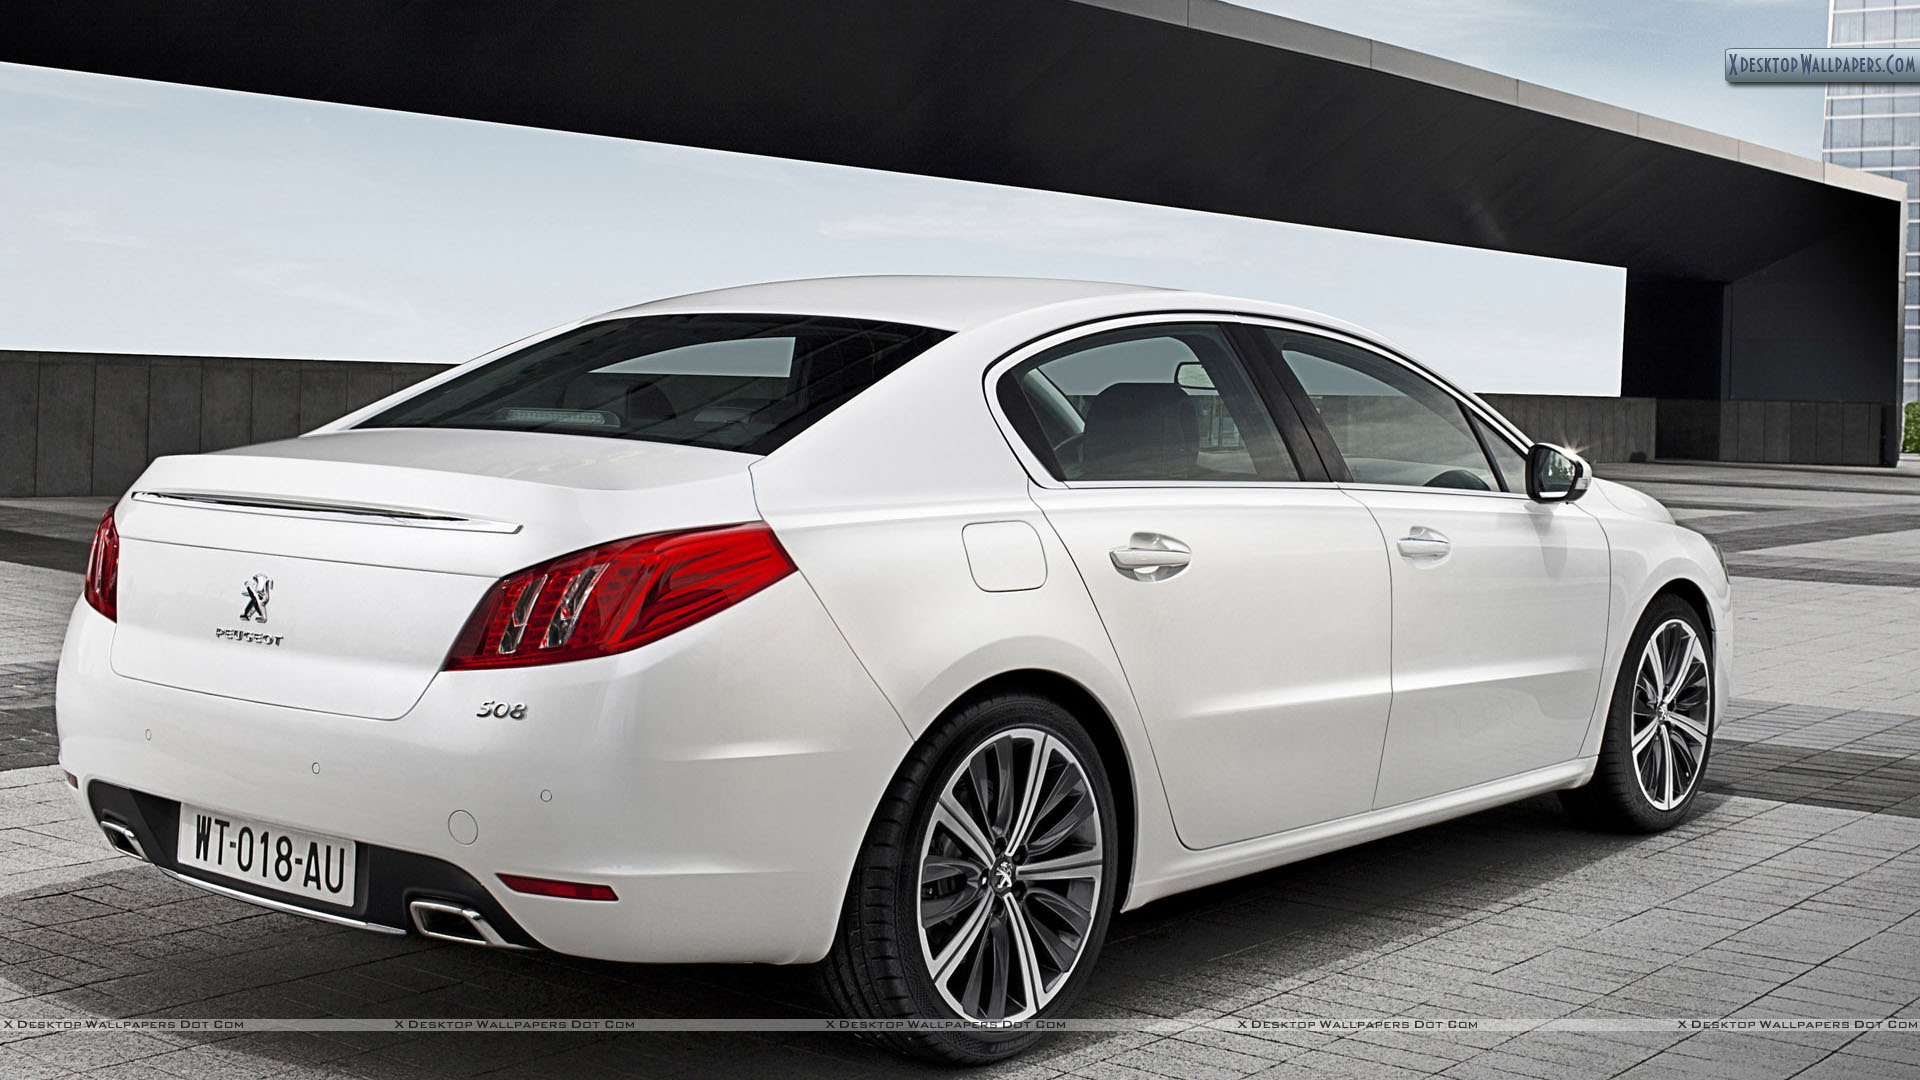 Peugeot 508 wallpapers photos images in hd for Photo peugeot 508